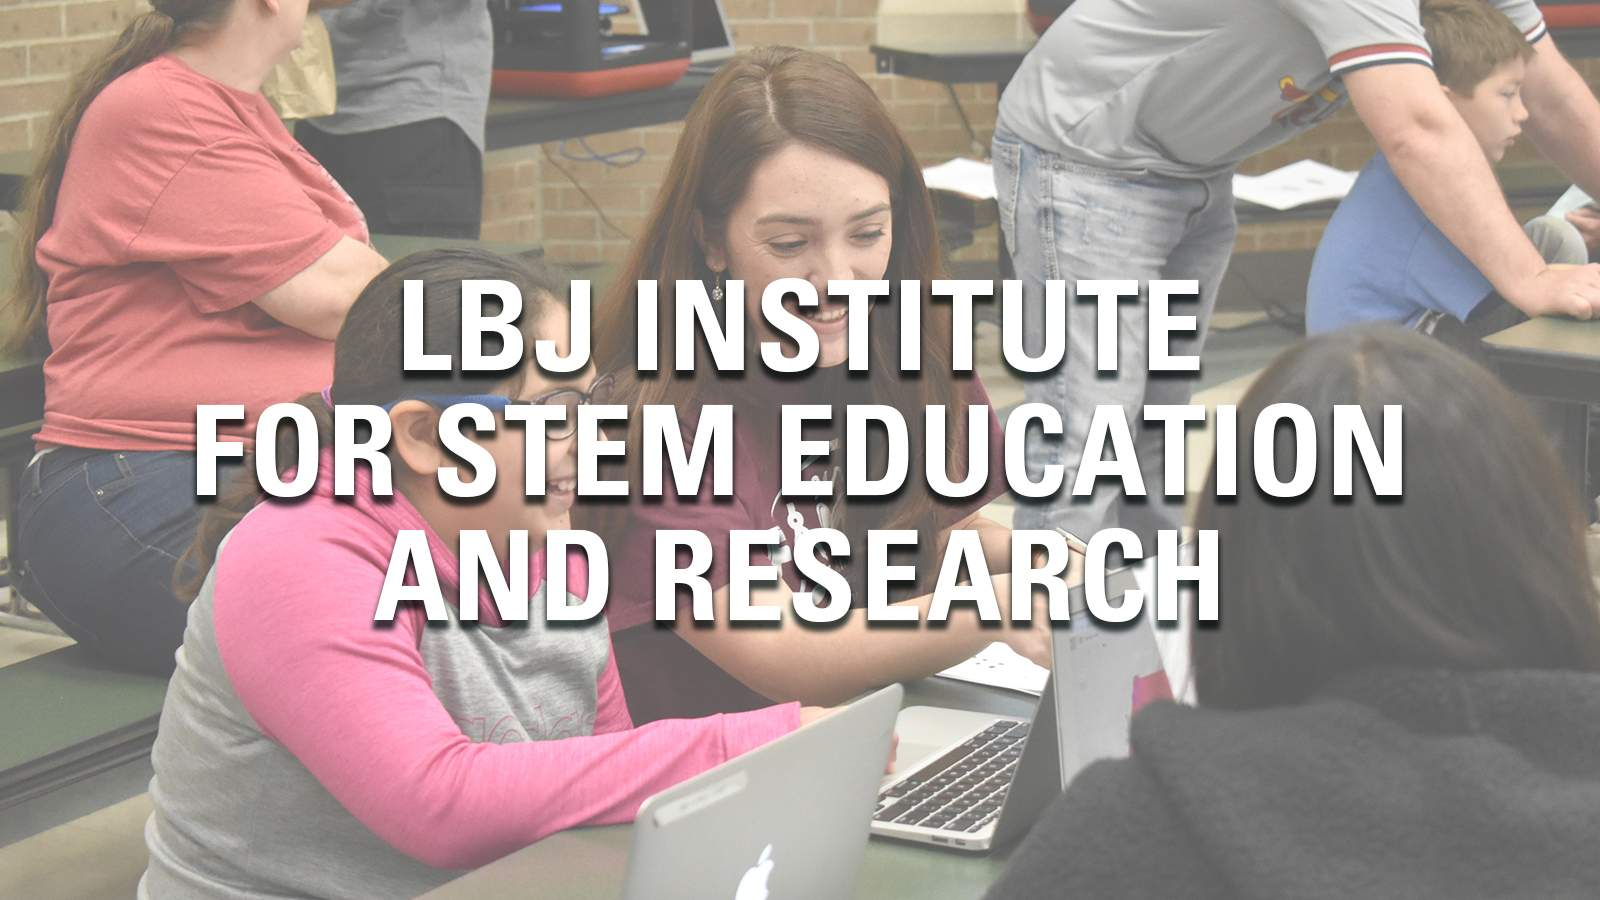 LBJ Institute for STEM Education and Research Faculty/Staff Directory